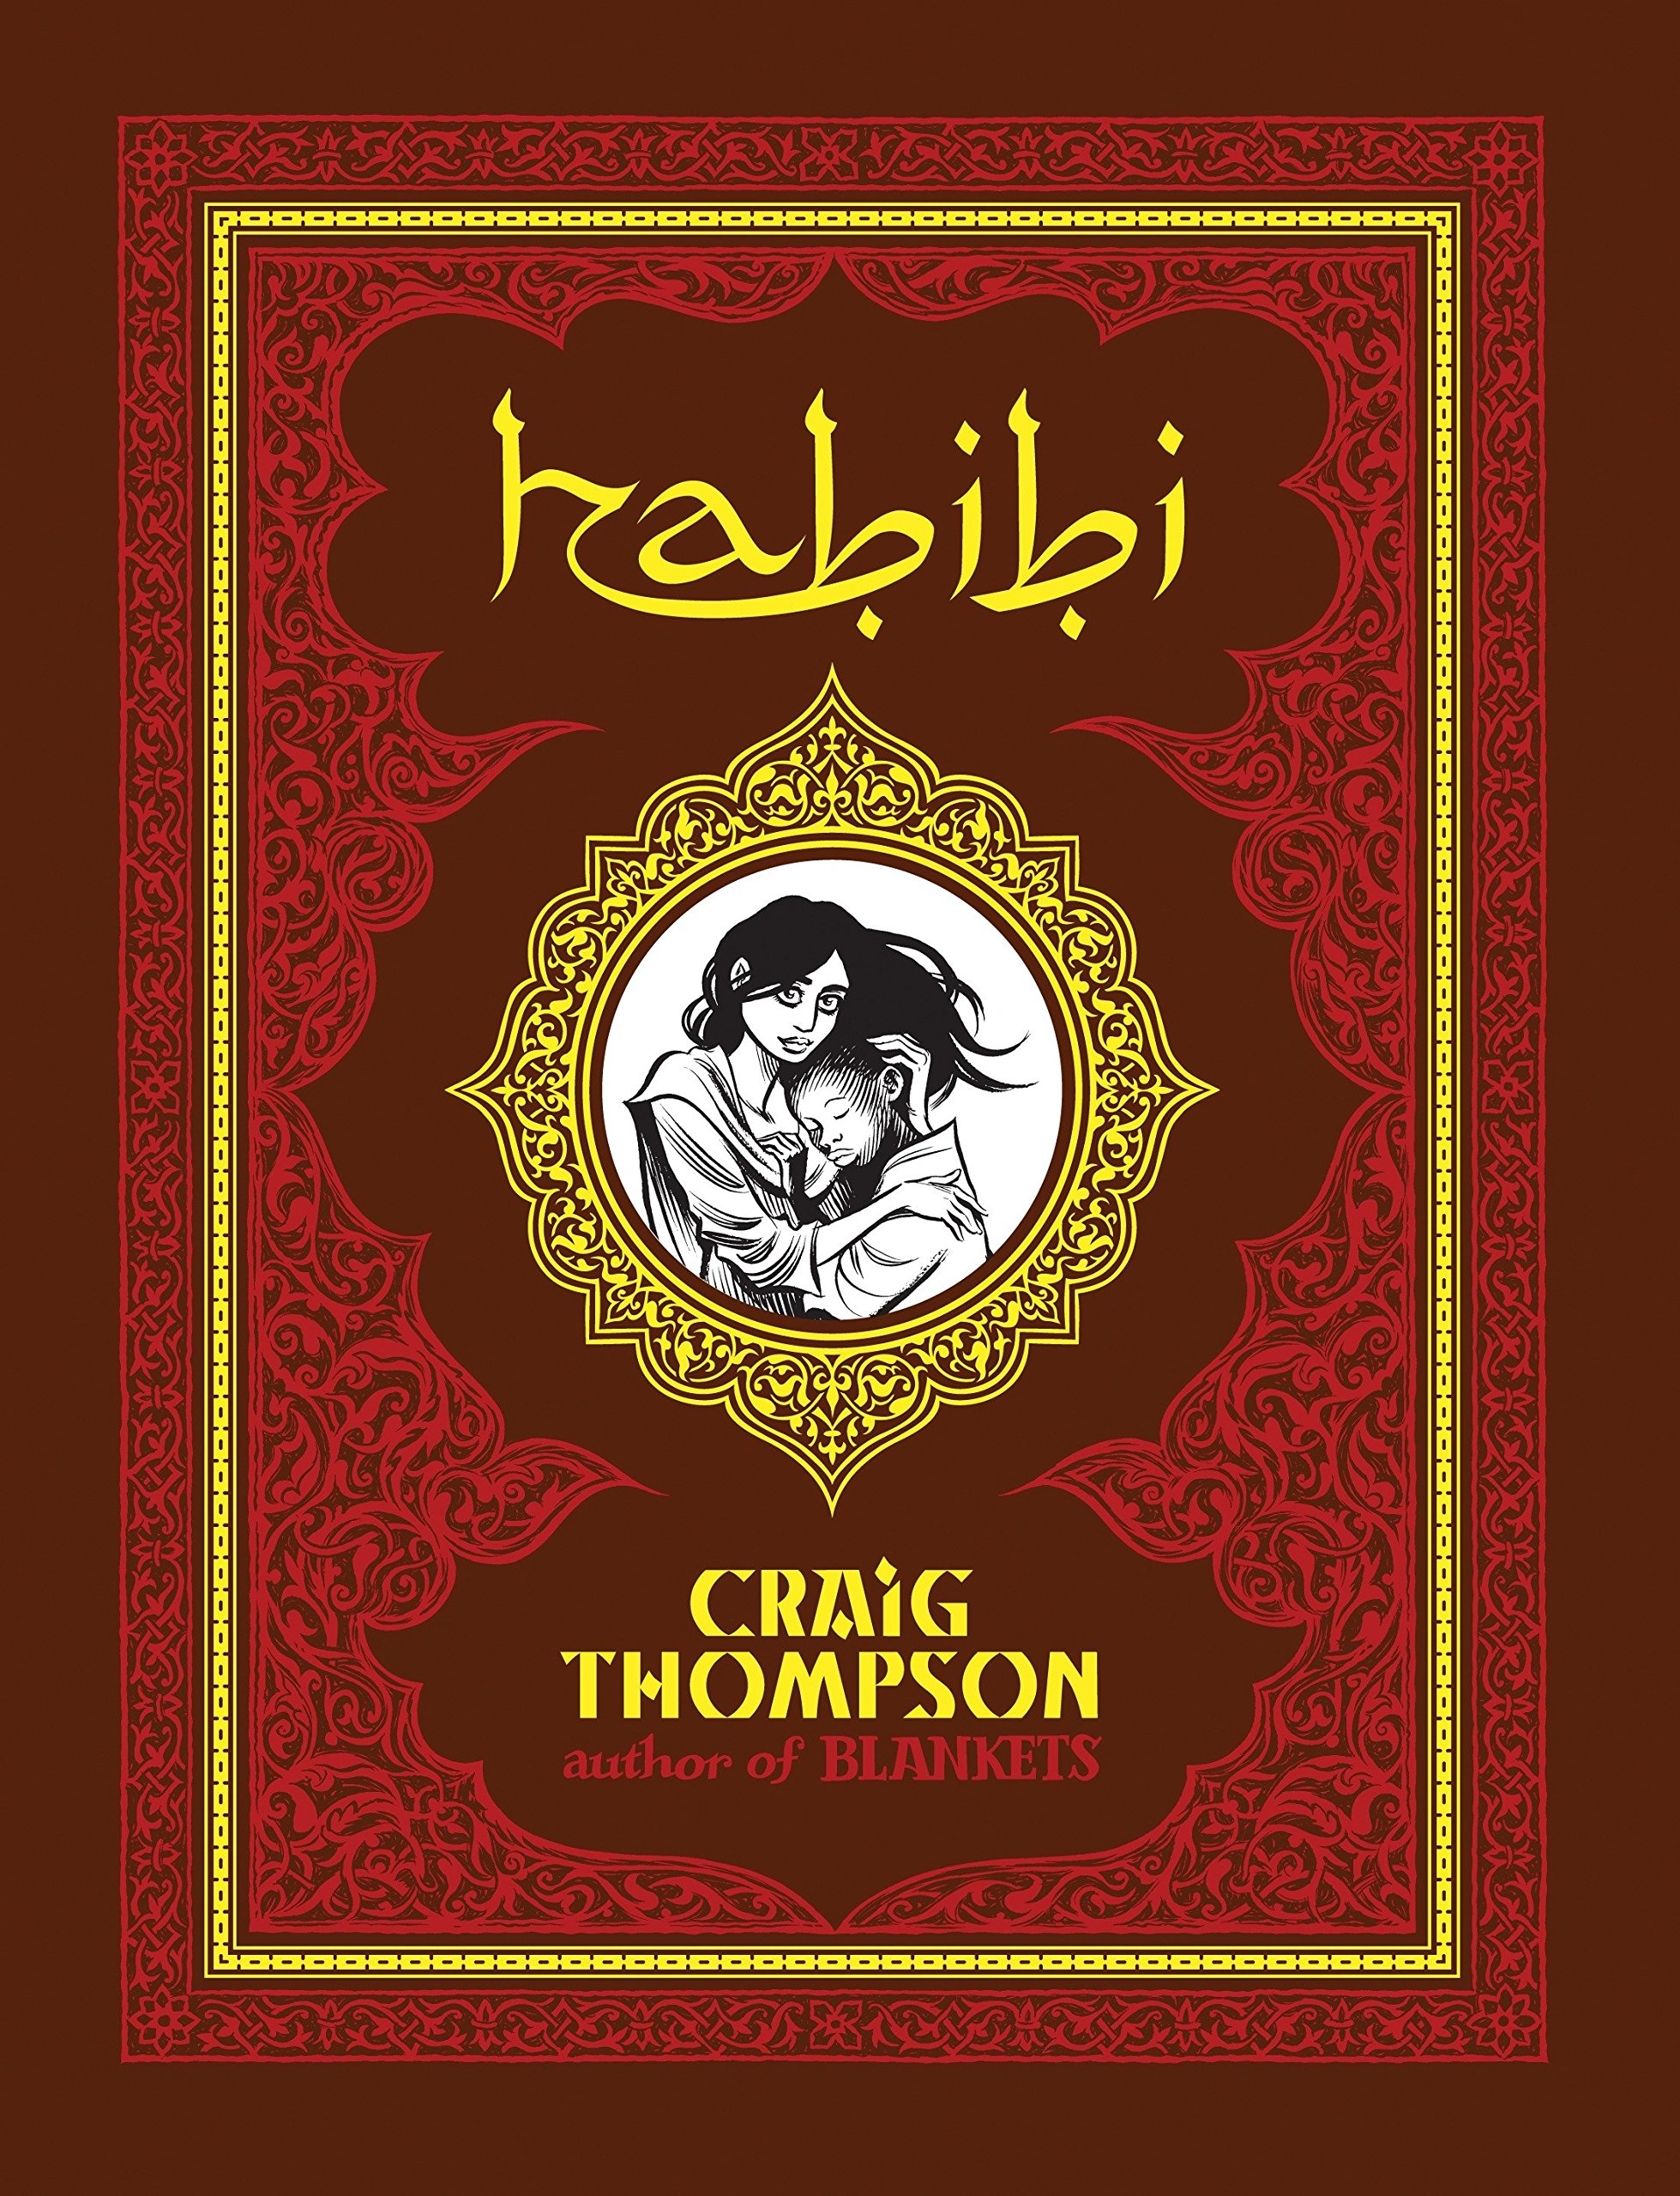 Buy Habibi (Pantheon Graphic Library) Book Online at Low Prices in India    Habibi (Pantheon Graphic Library) Reviews & Ratings - Amazon.in